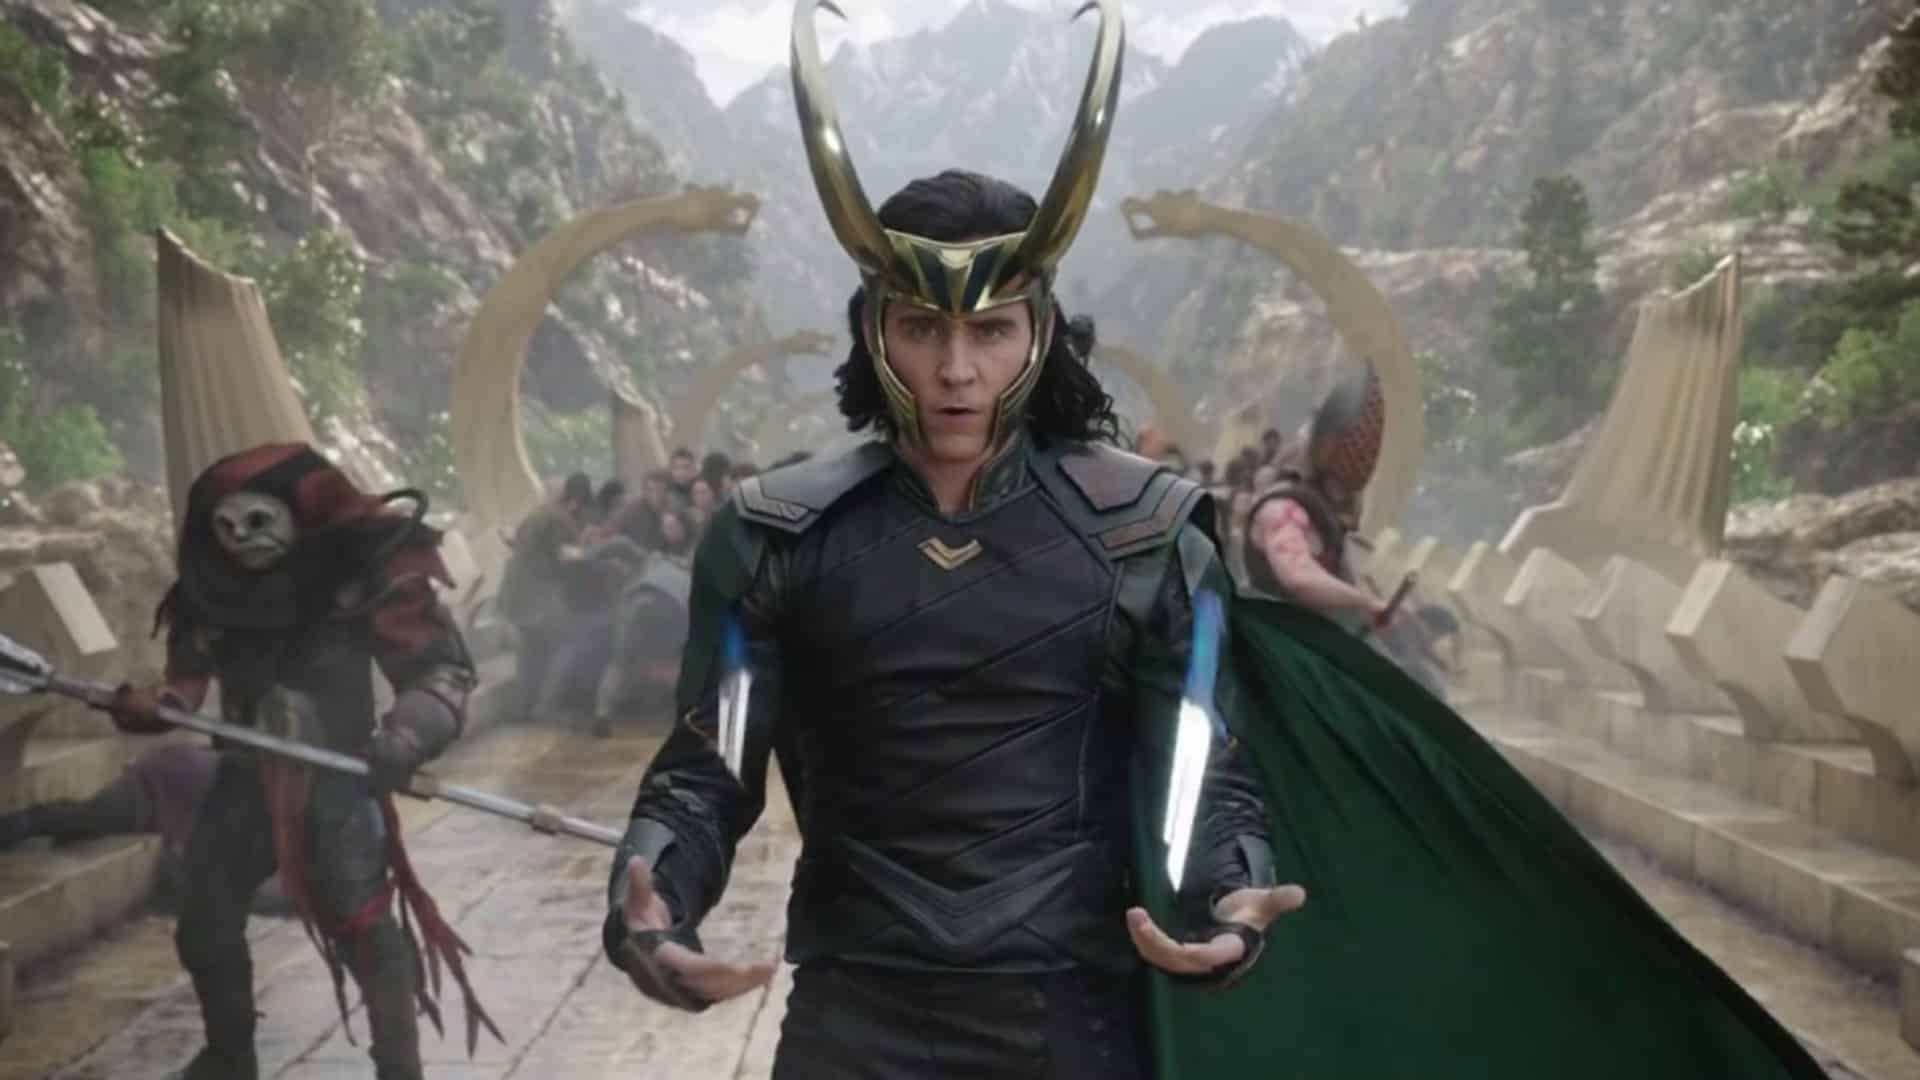 Tom Hiddleston Shares New Photo That Reveals Marvel's Loki Pre-Production Has Started